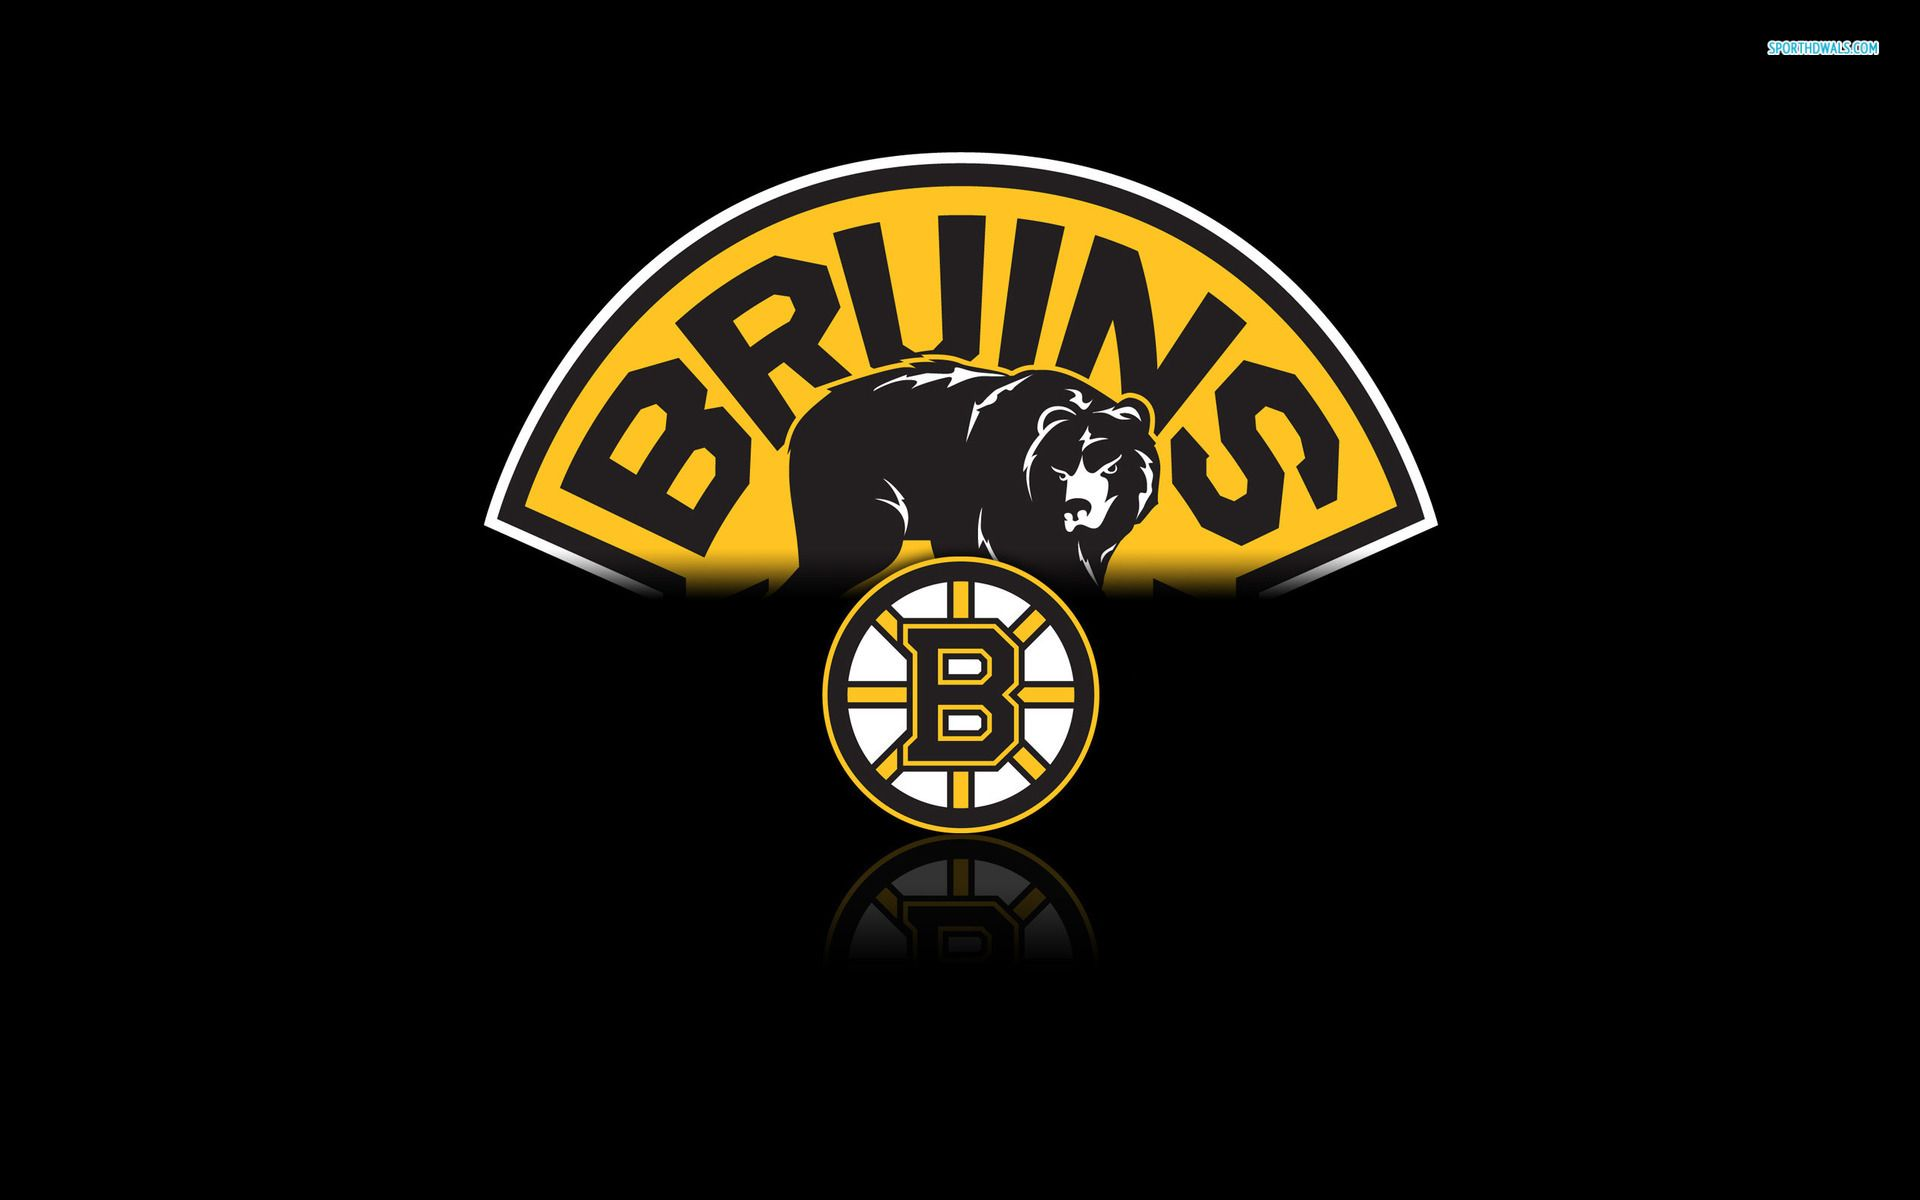 Boston Bruins Live Wallpaper Download 1920x1080 Pictures Wallpapers 41